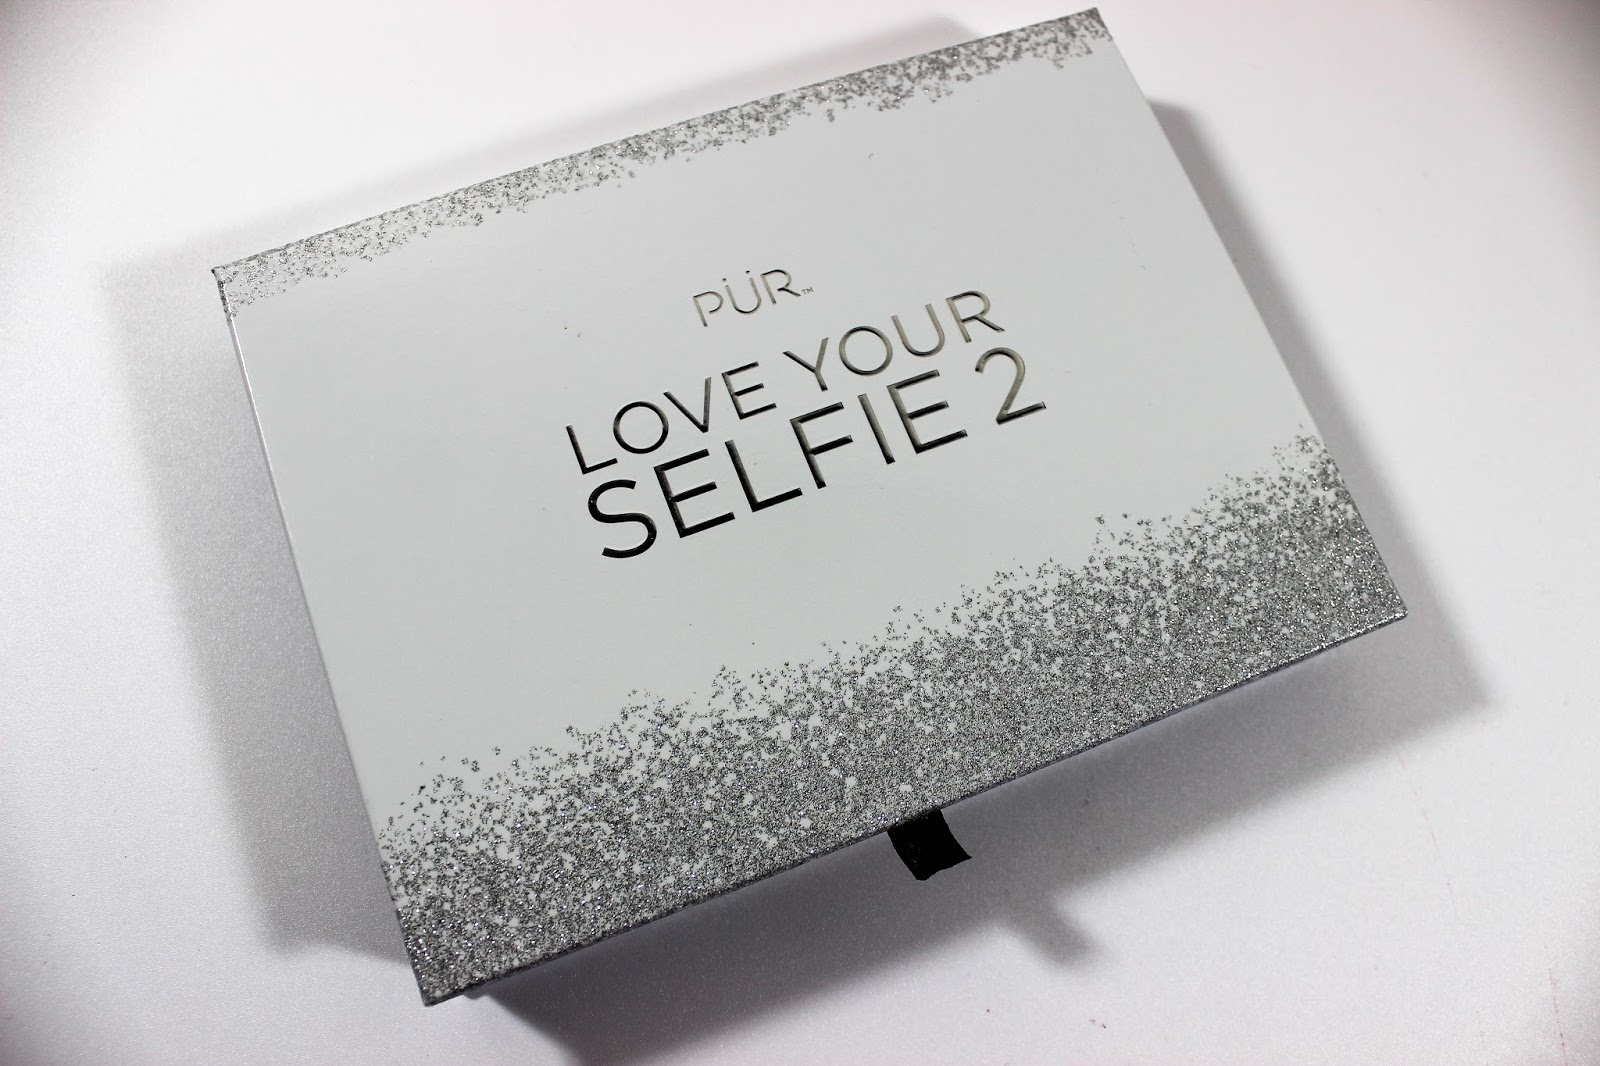 Pur Cosmetics Love Your Selfie 2 Review